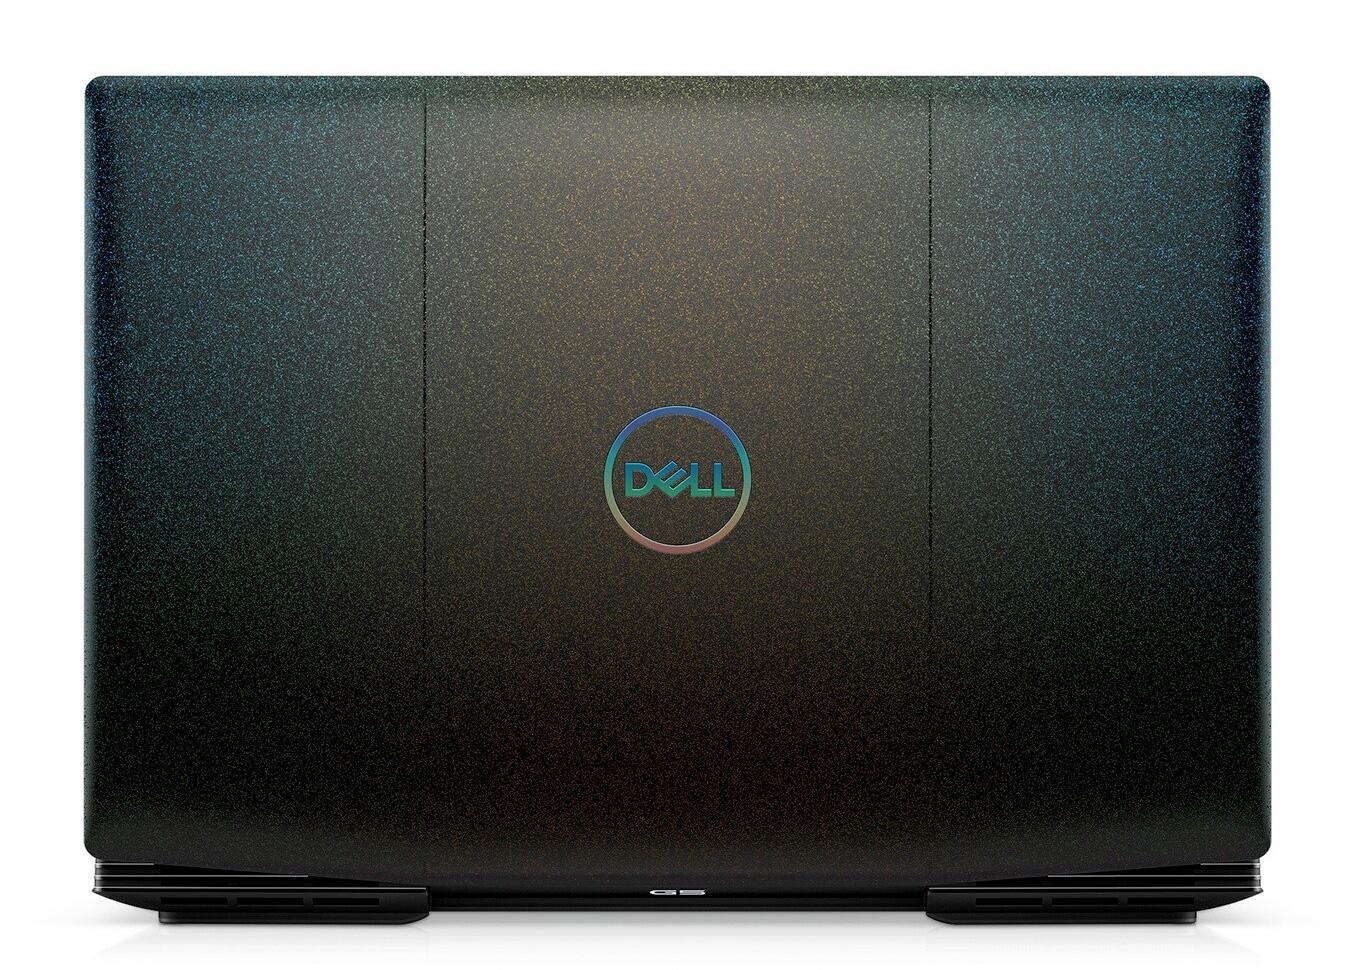 Ordinateur portable Dell Inspiron G5 15 5500-252 Noir - RTX 2060, IPS 300Hz, SSD 1 To, TB3 - photo 5